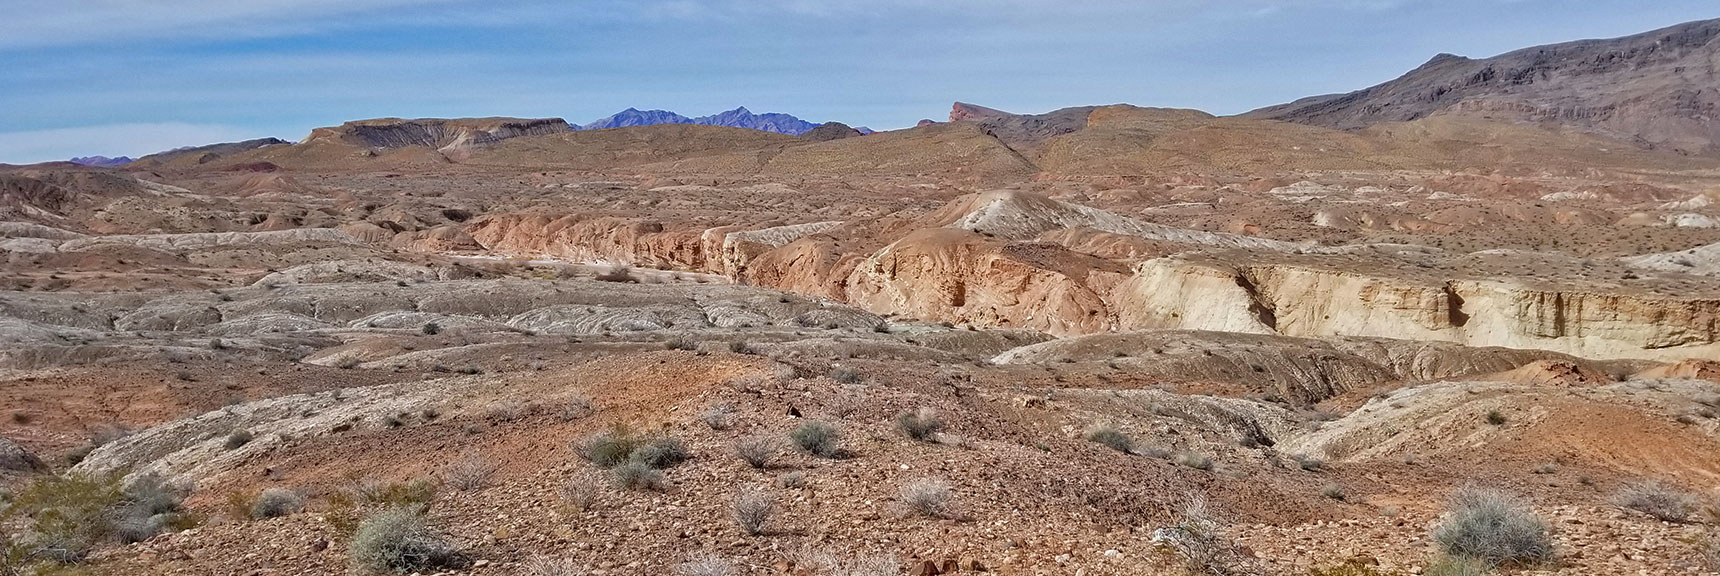 Muddy Mountains and Echo Wash Badlands Area from About Mile 34 On Northshore Road in Lake Mead National Park, Nevada